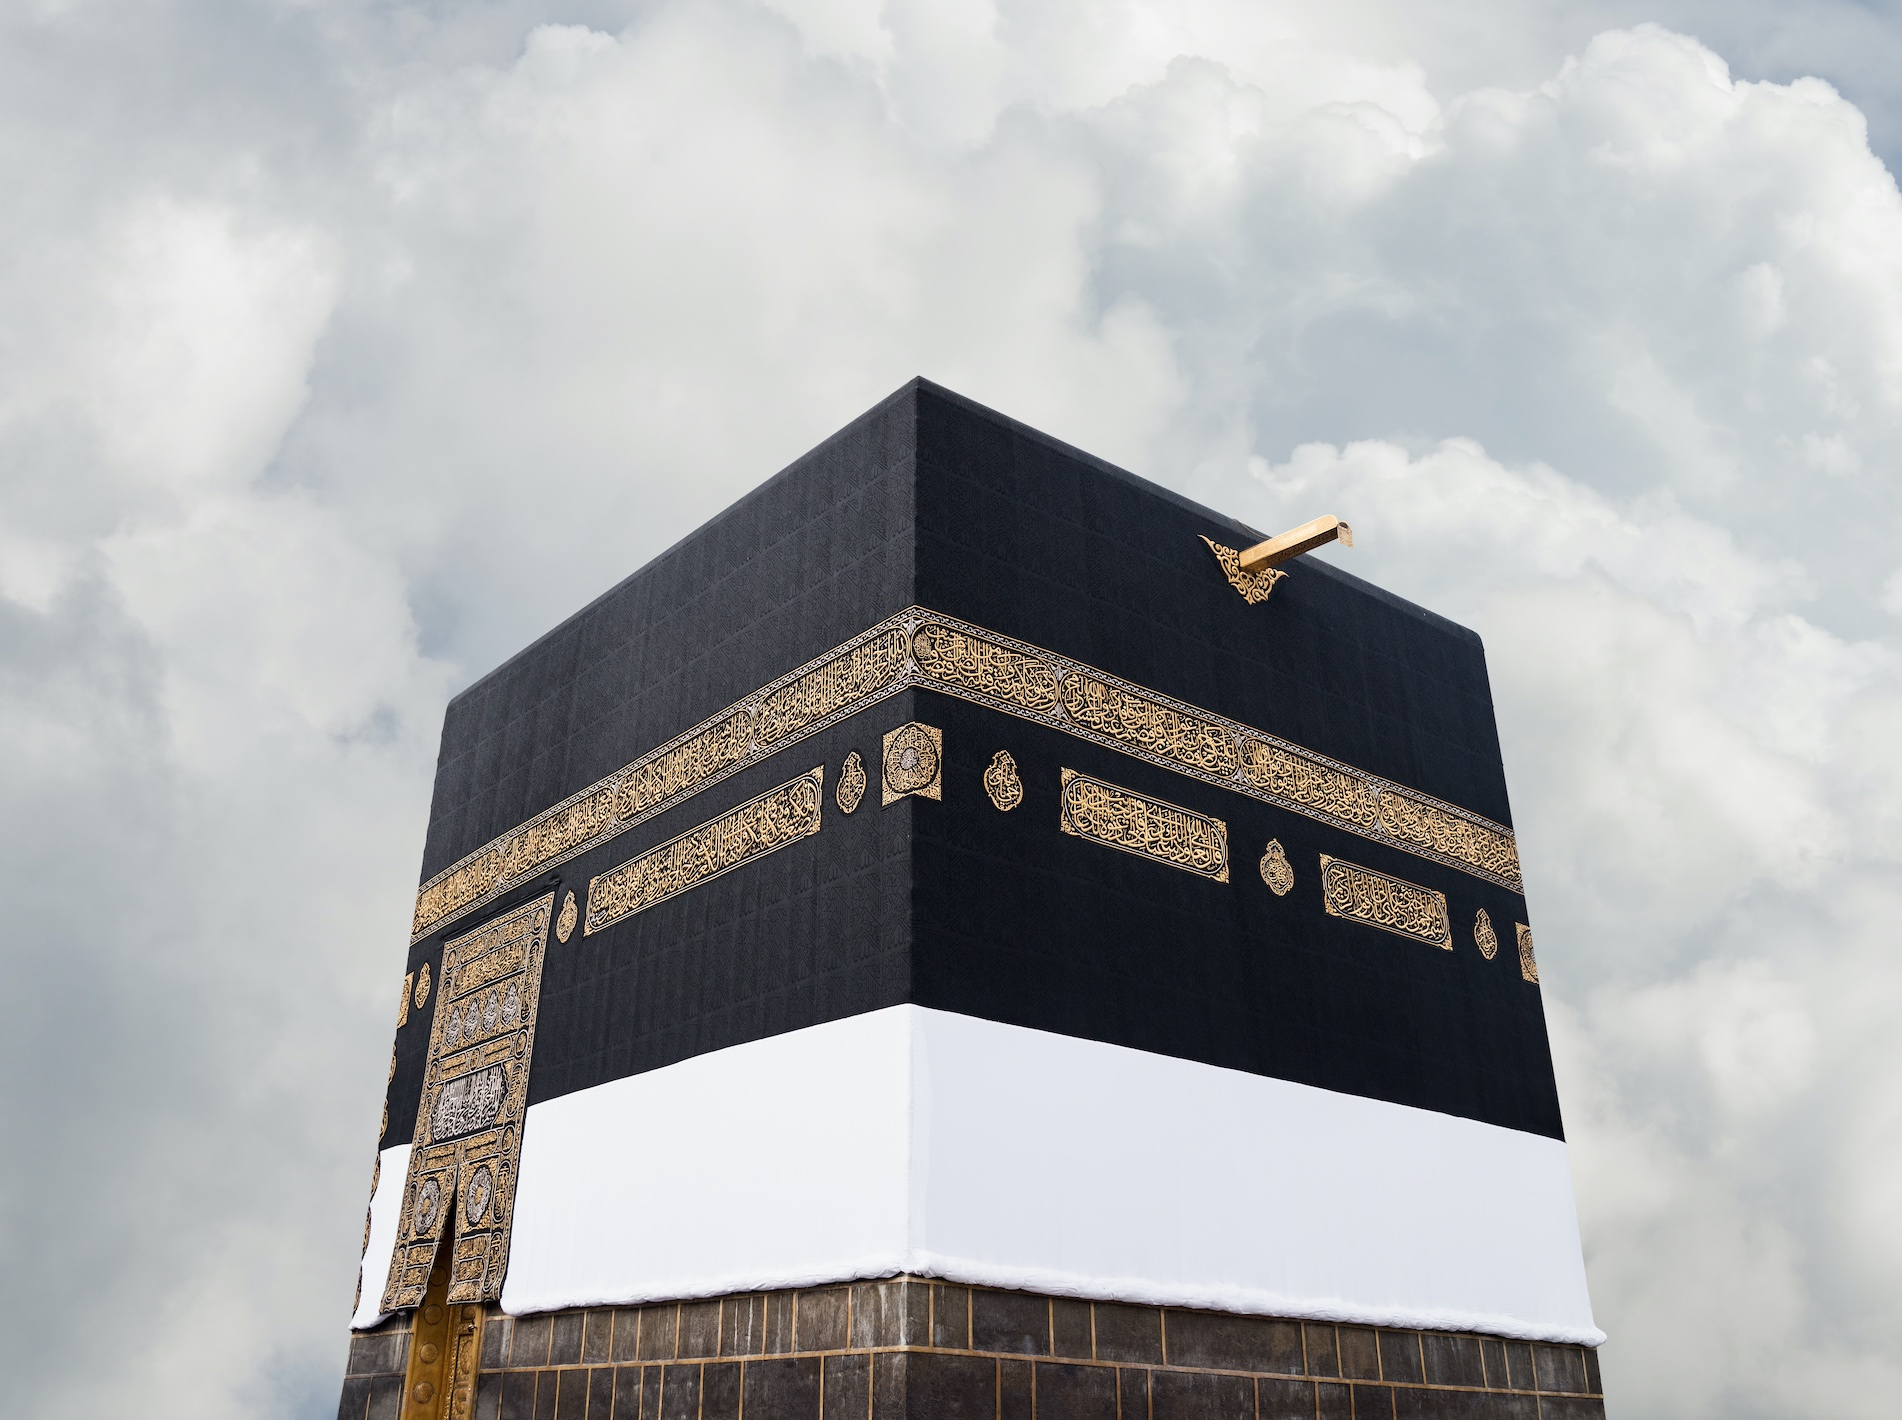 Picture of the Kaaba